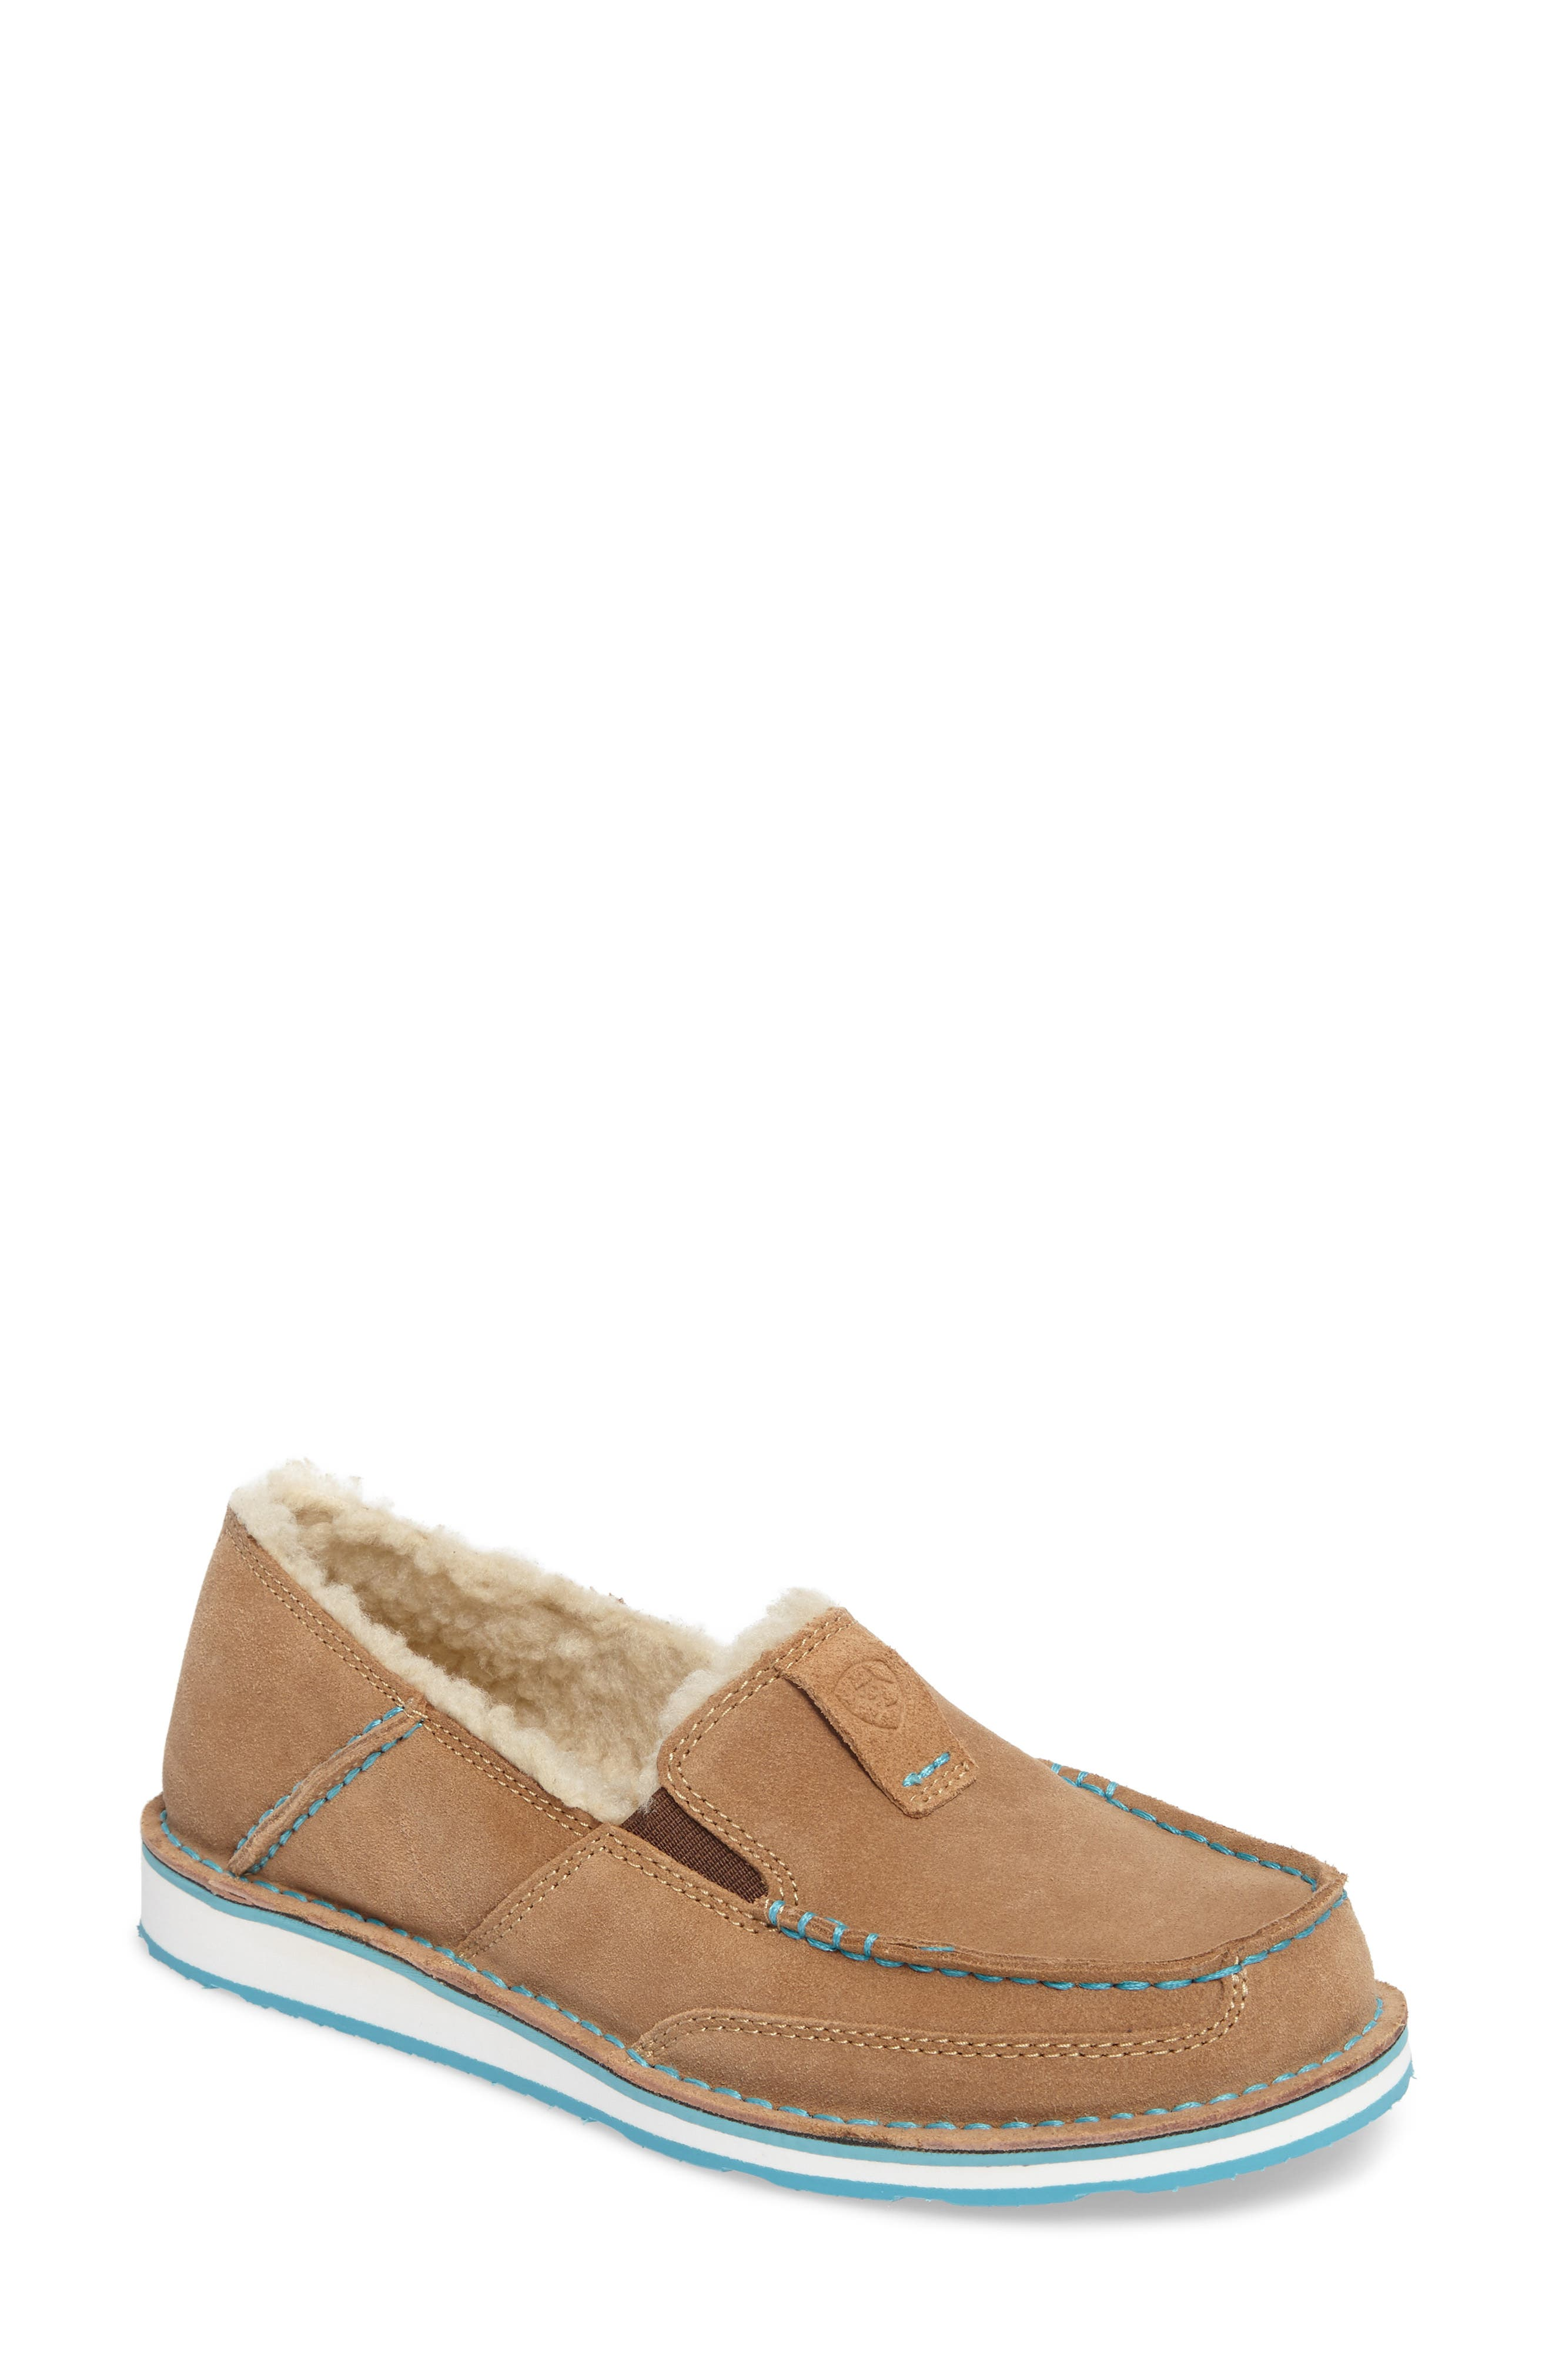 Ariat Cruiser Slip-On Loafer with Faux Shearling Lining (Women)